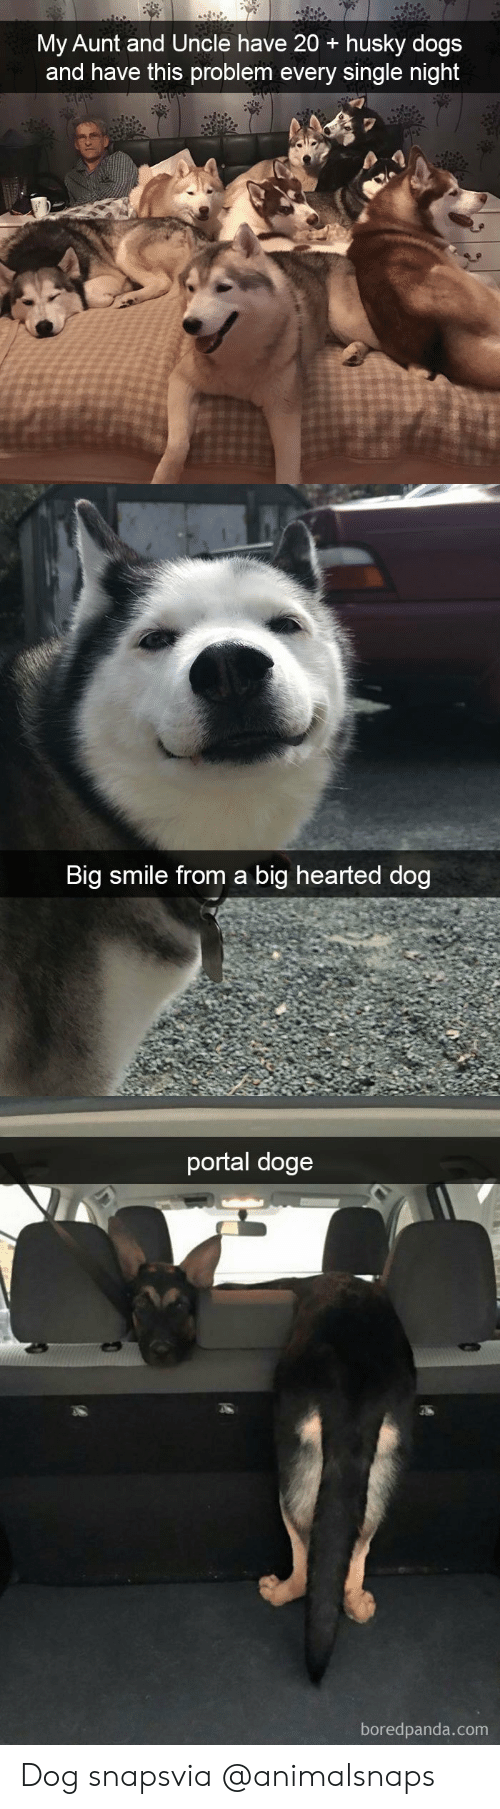 Doge, Dogs, and Target: My Aunt and Uncle have 20 + husky dogs  and have this problem every single night   Big smile from a big hearted dog   portal doge  boredpanda.com Dog snapsvia @animalsnaps